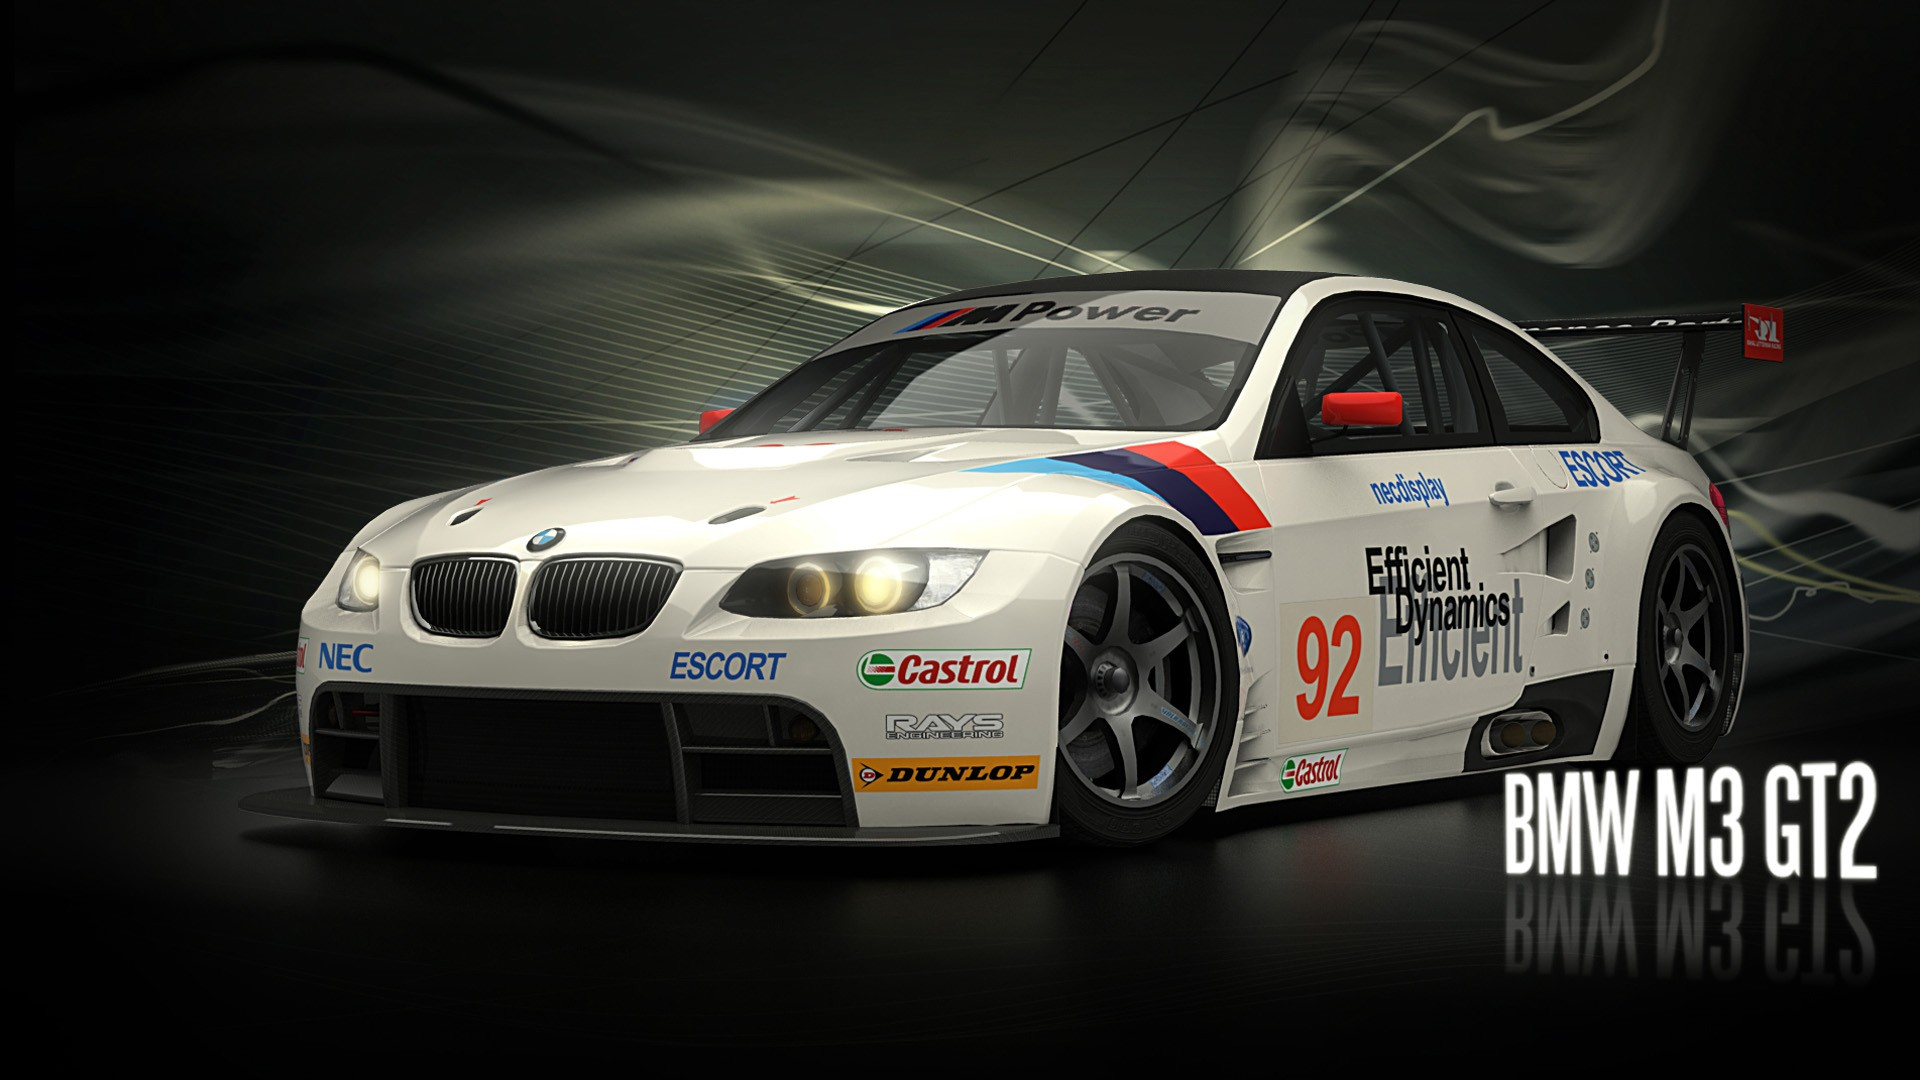 Download Cool BMW M3 GT2 Car Wallpaper for FREE form us: The best of marvelous Cool BMW M3 GT2 Car Wallpaper detail shoot above is part of our Cool BMW ...